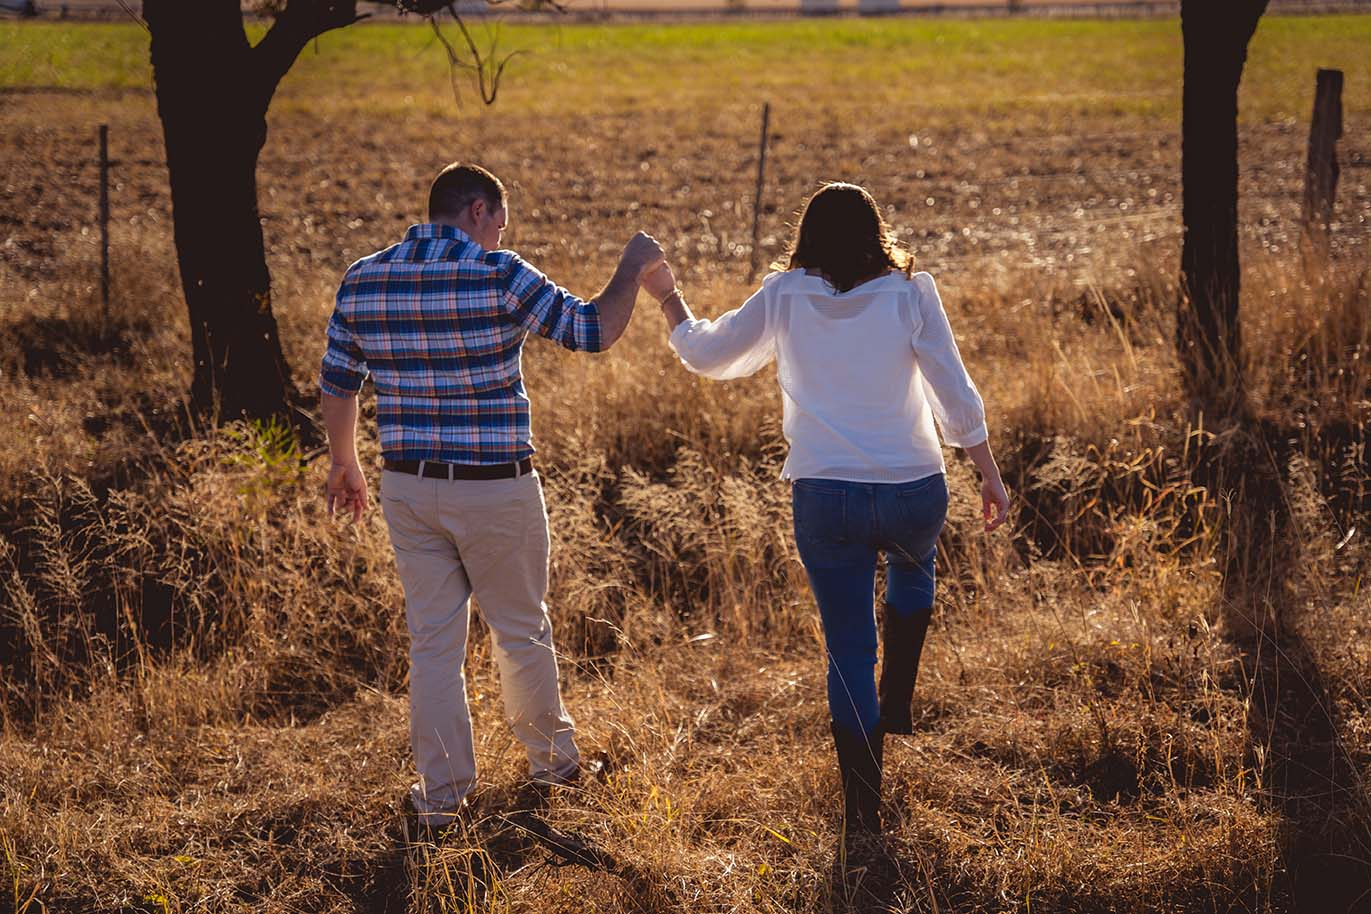 Engagement Photography - couple walking holding hands